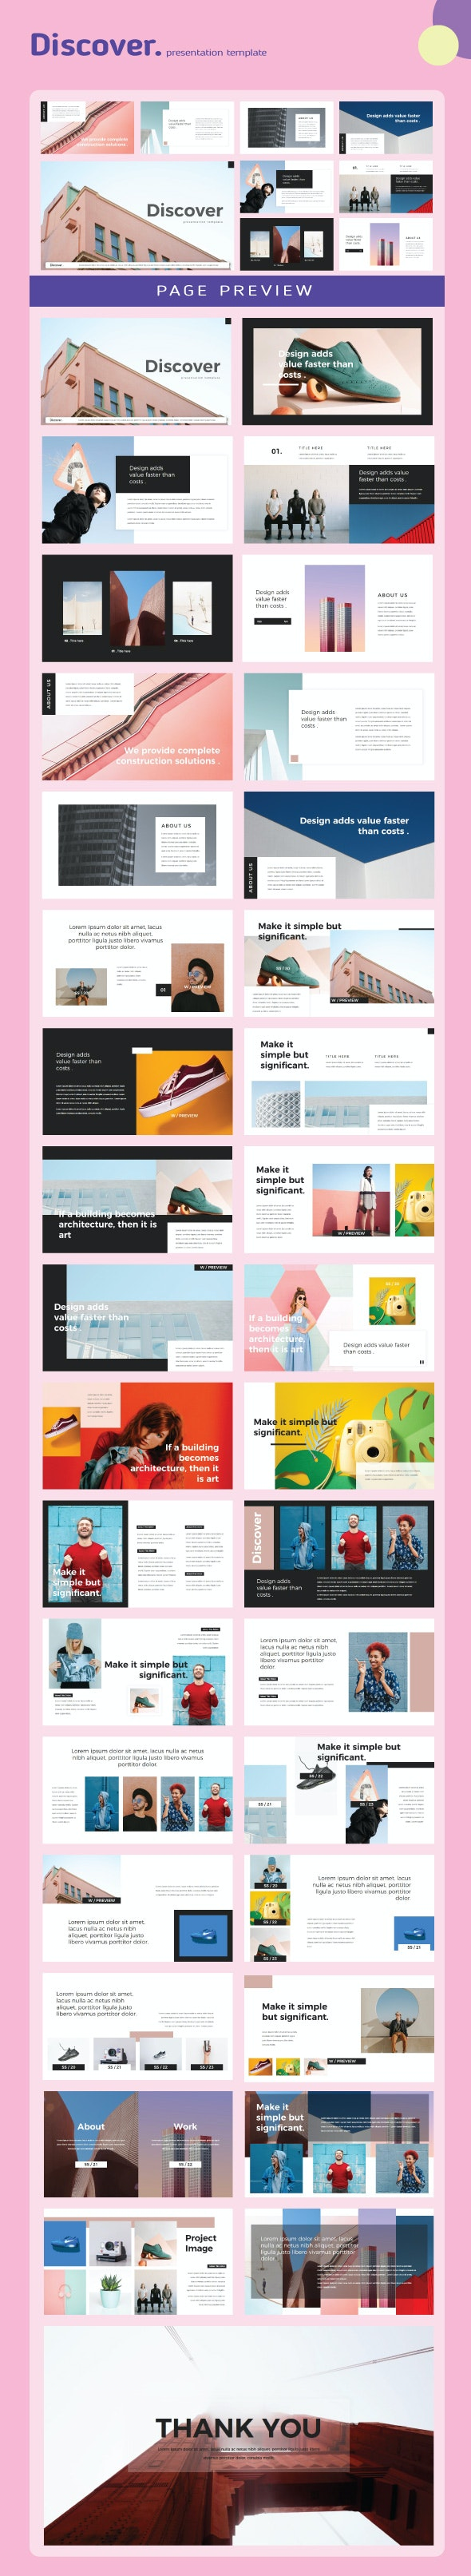 Discover PowerPoint Templates - Creative PowerPoint Templates